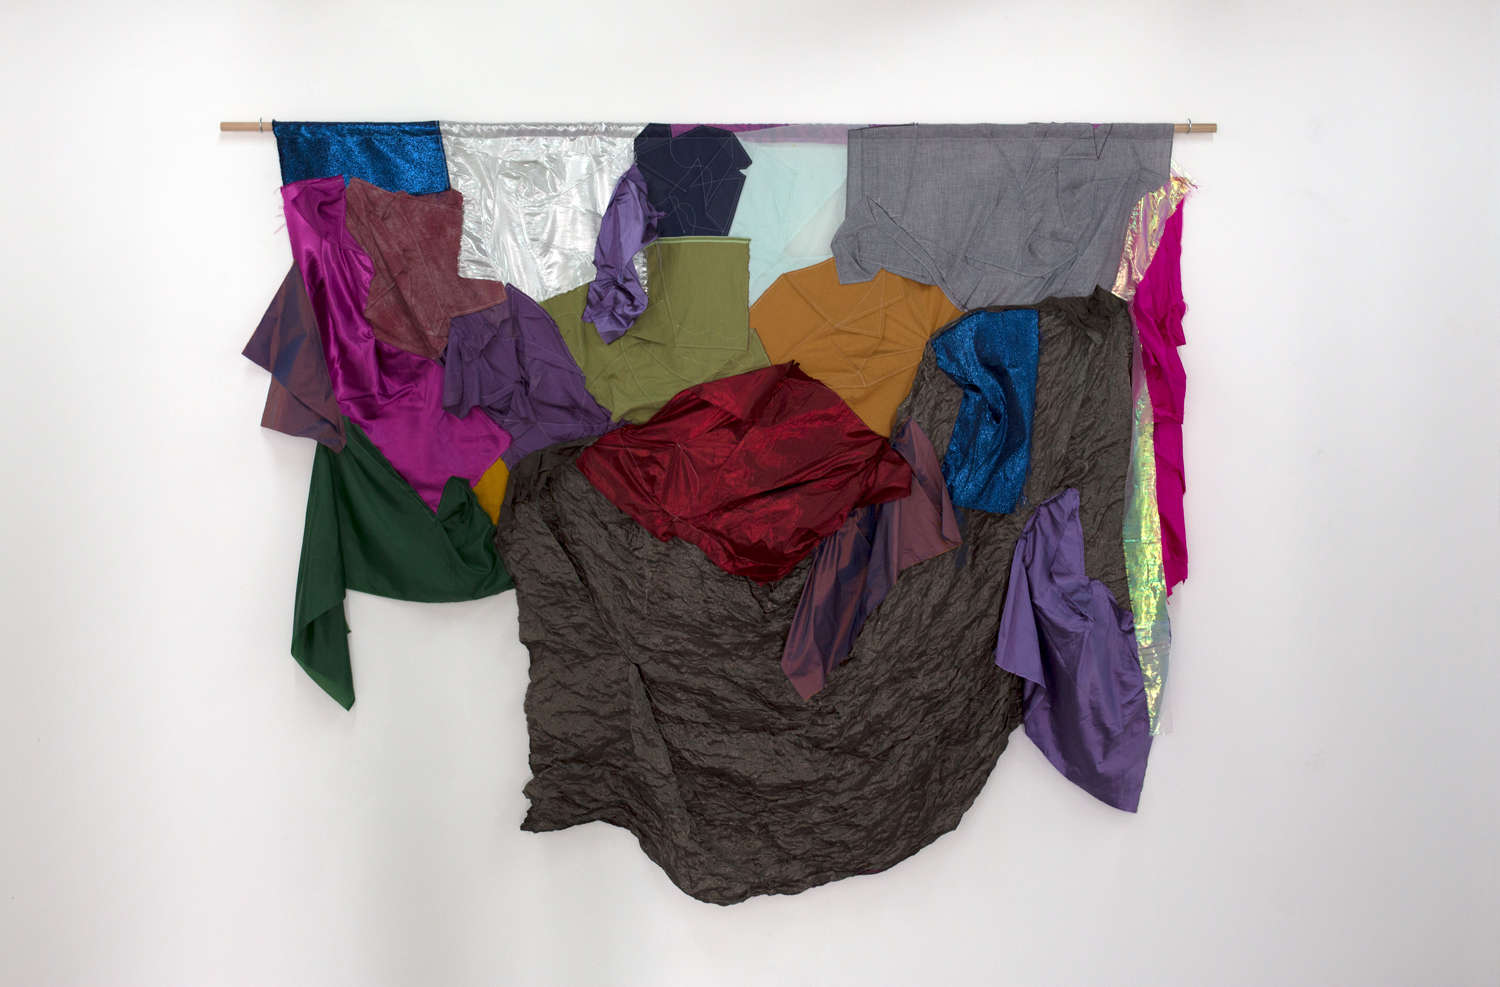 In soft fabric, you bury yourself , 2019, silk, cotton, linen, polyester, thread, Tasmanian oak dowel, cup hooks, 187 x 240cm  Photo: Xavier Burrow